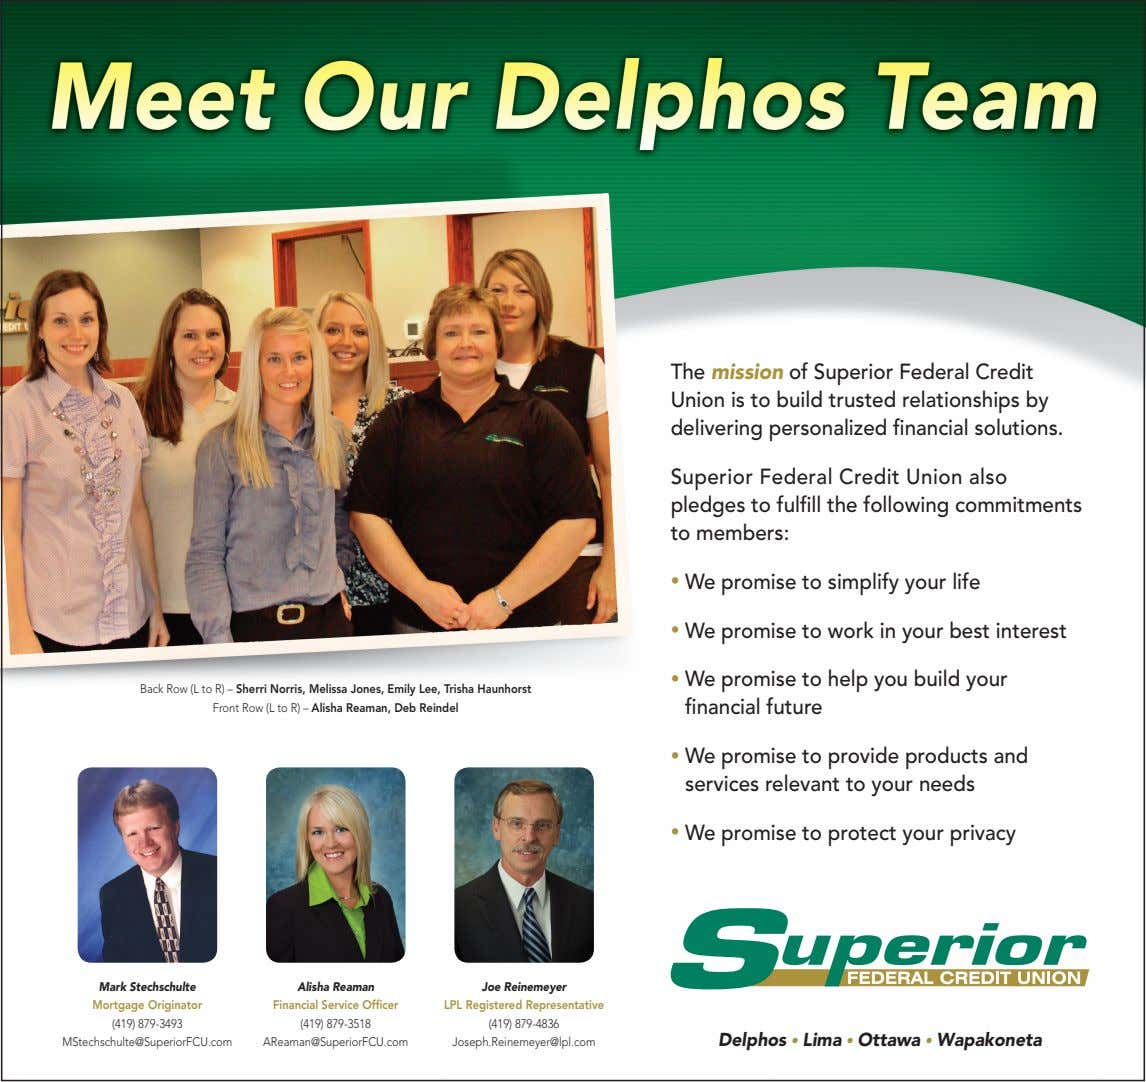 The mission of Superior Federal Credit Union is to build trusted relationships by delivering personalized financial